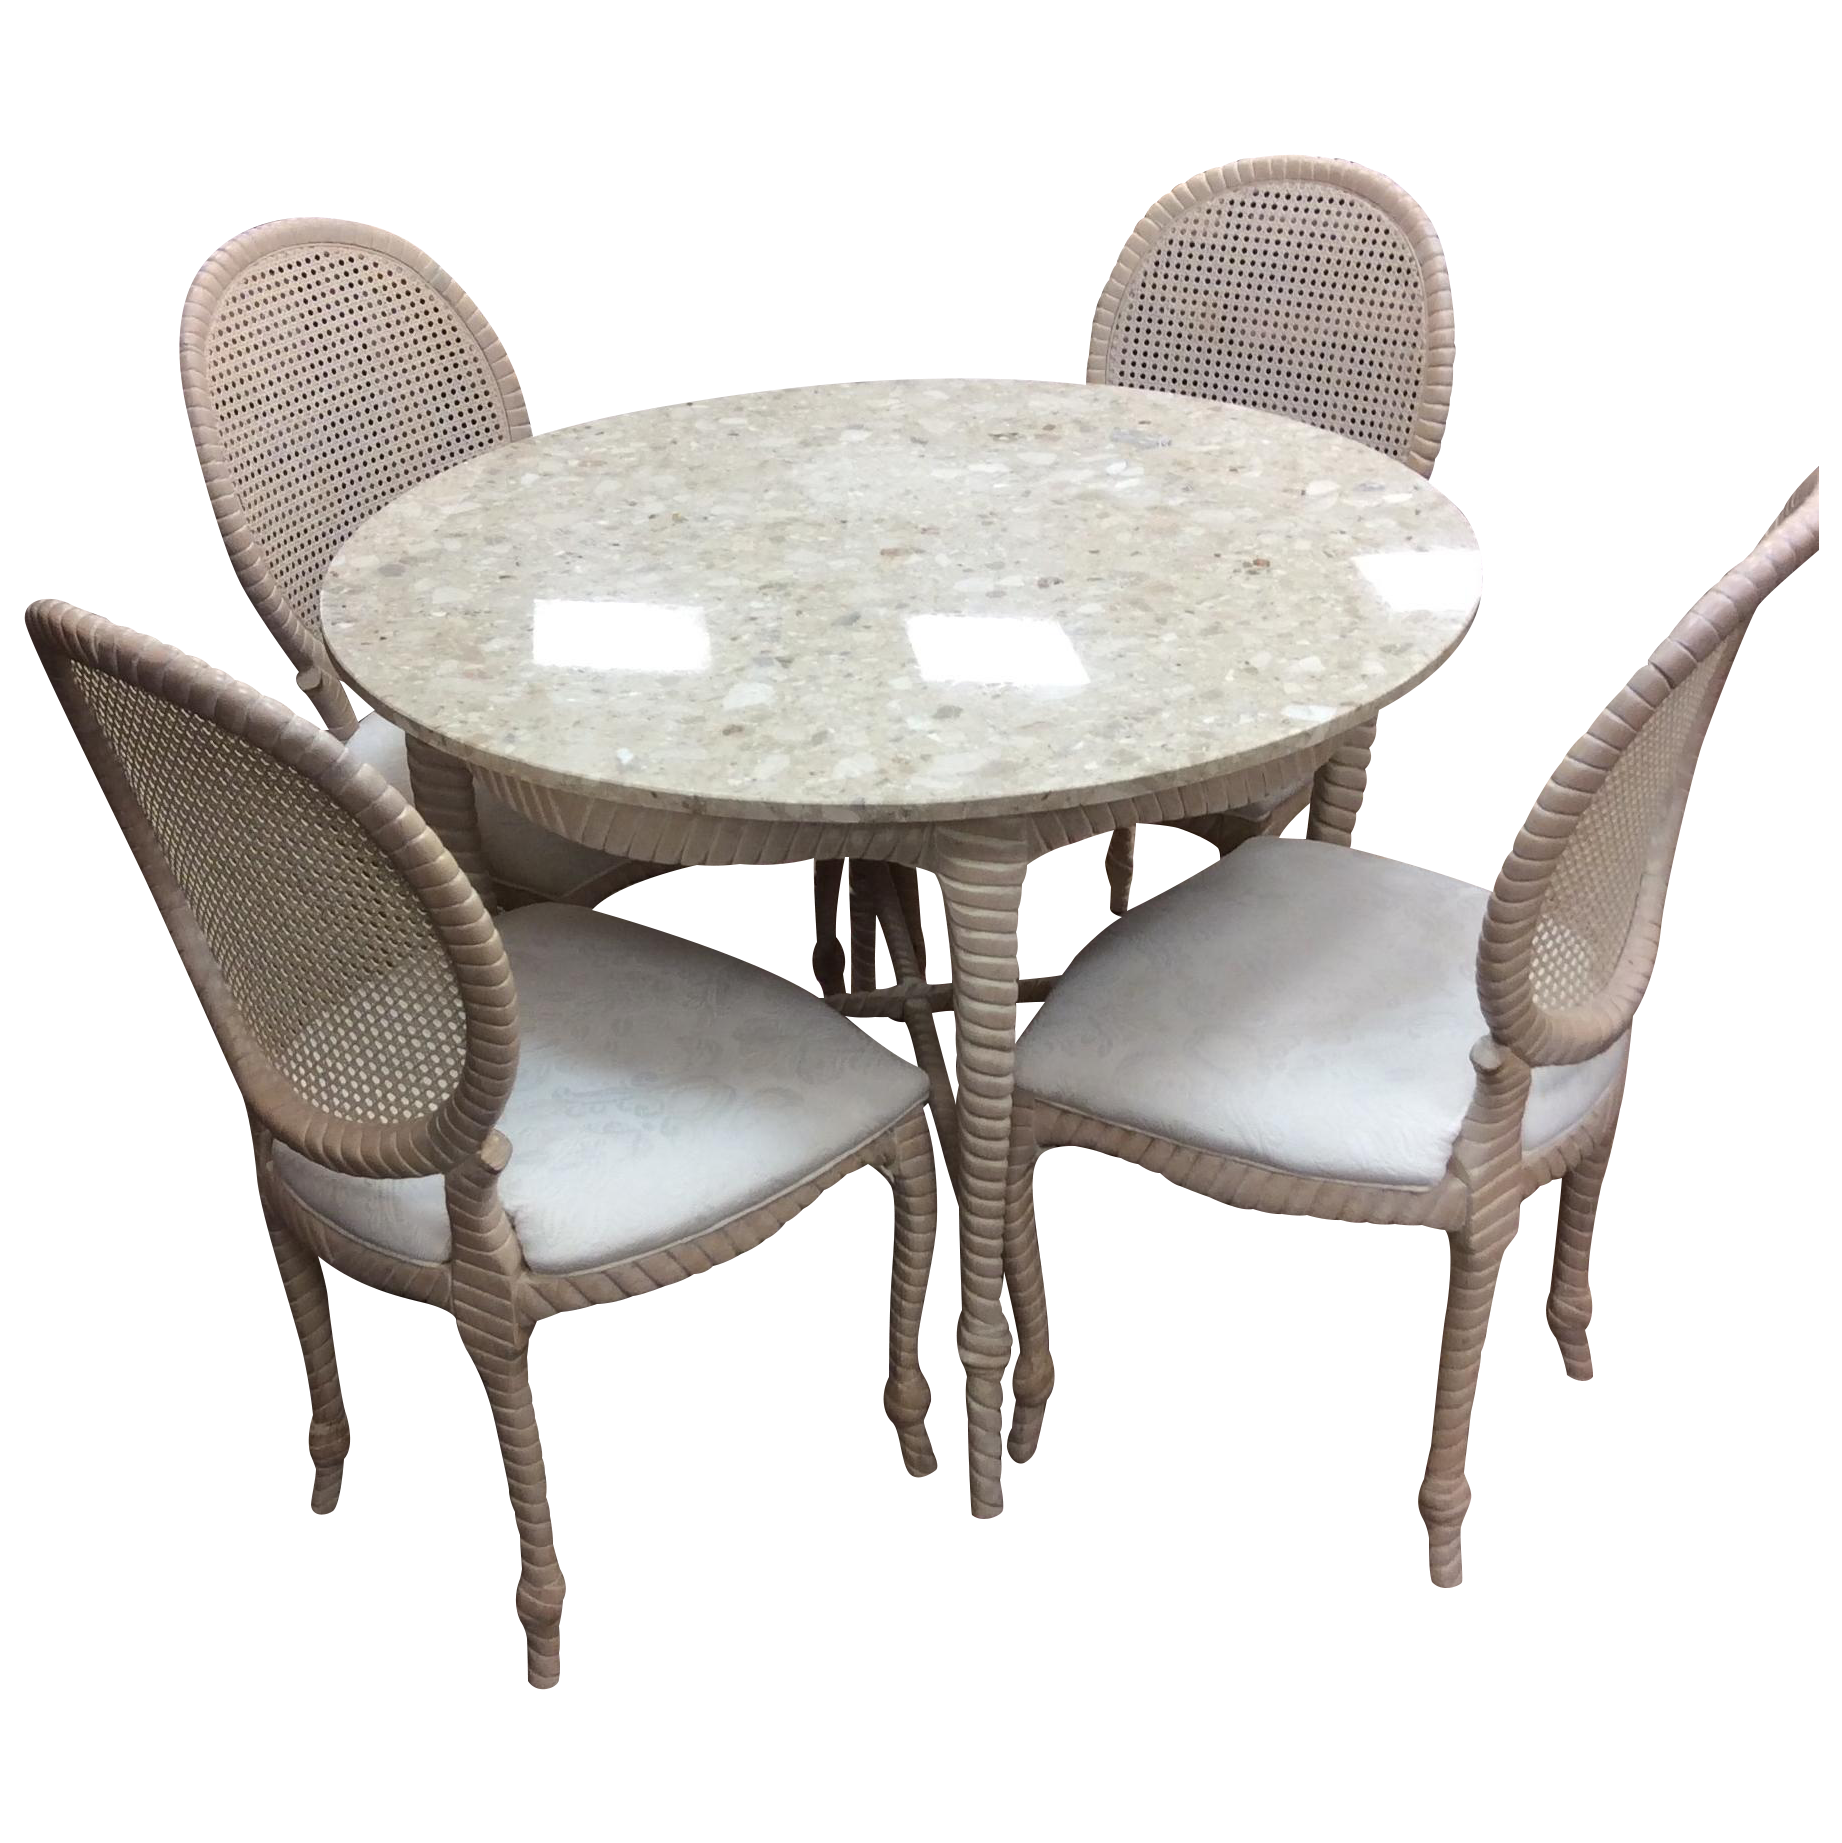 Round Marble Top Dining Table amp Four Chairs Chairish : 620e52bc de36 45cf b5ee c1b732ac1331aspectfitampwidth640ampheight640 from www.chairish.com size 640 x 640 jpeg 48kB